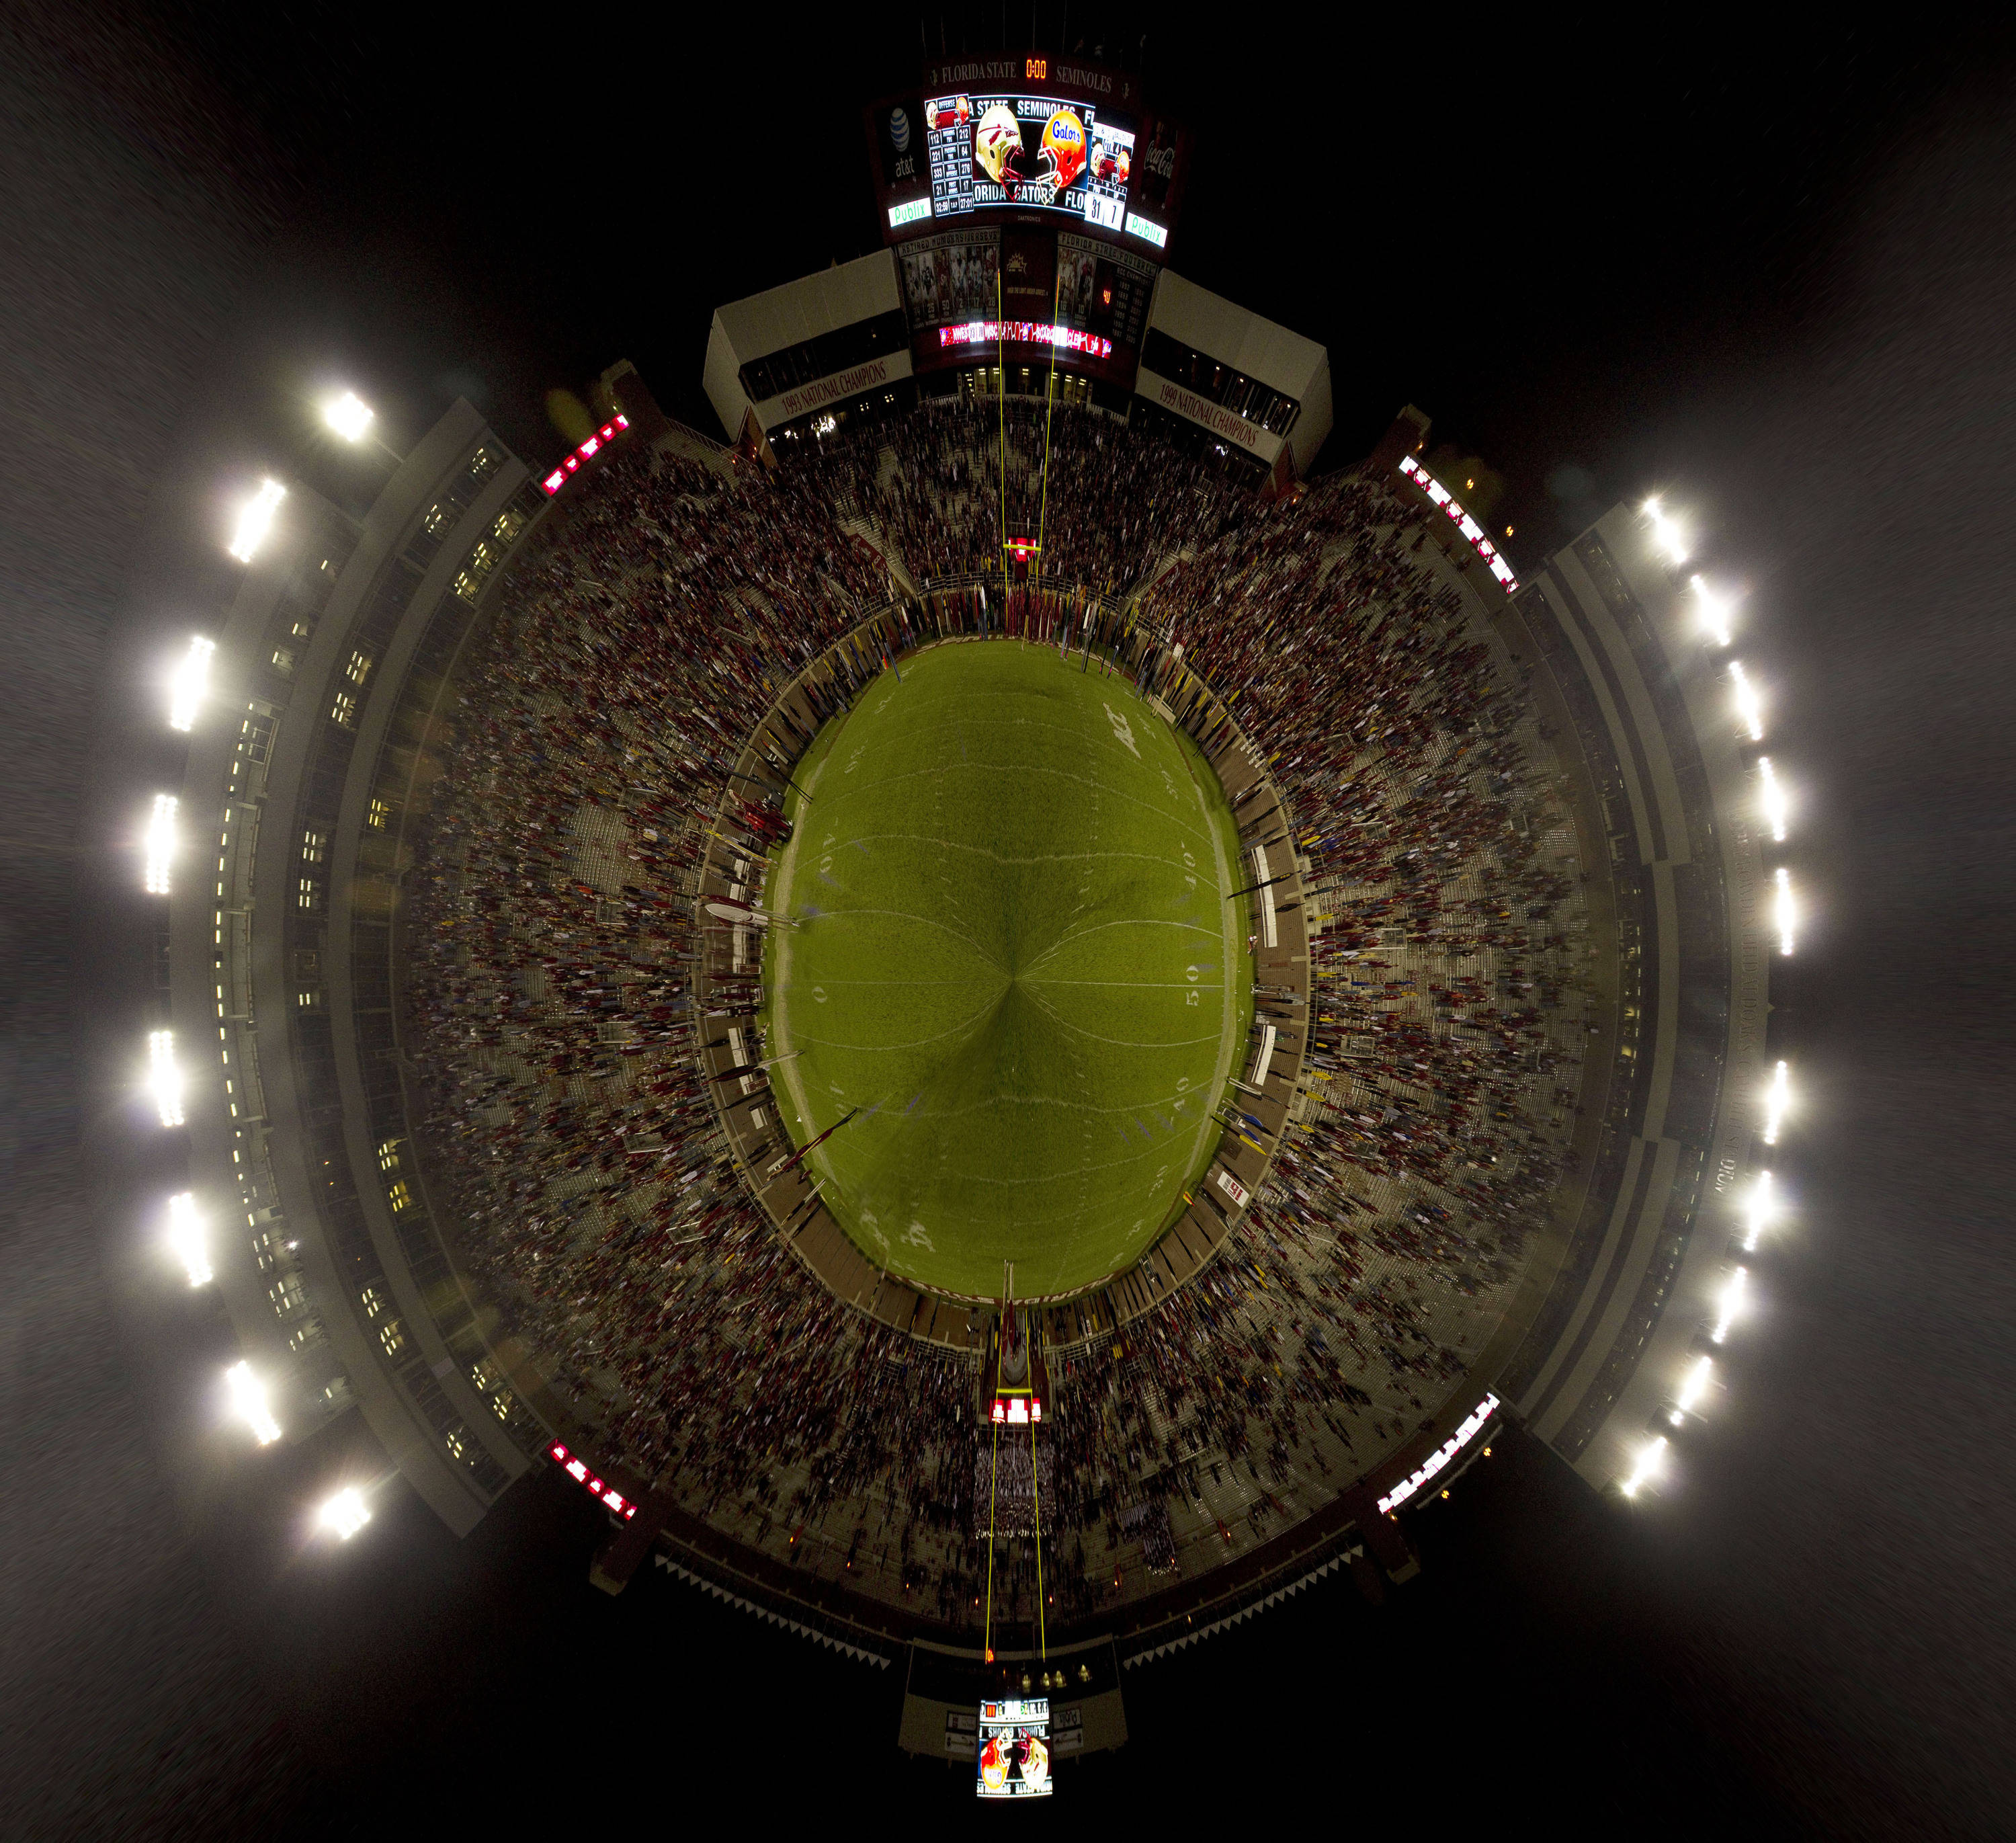 360 degree fisheye view of the the stadium after the 'Noles victory over the Gators.  (photoillustration)